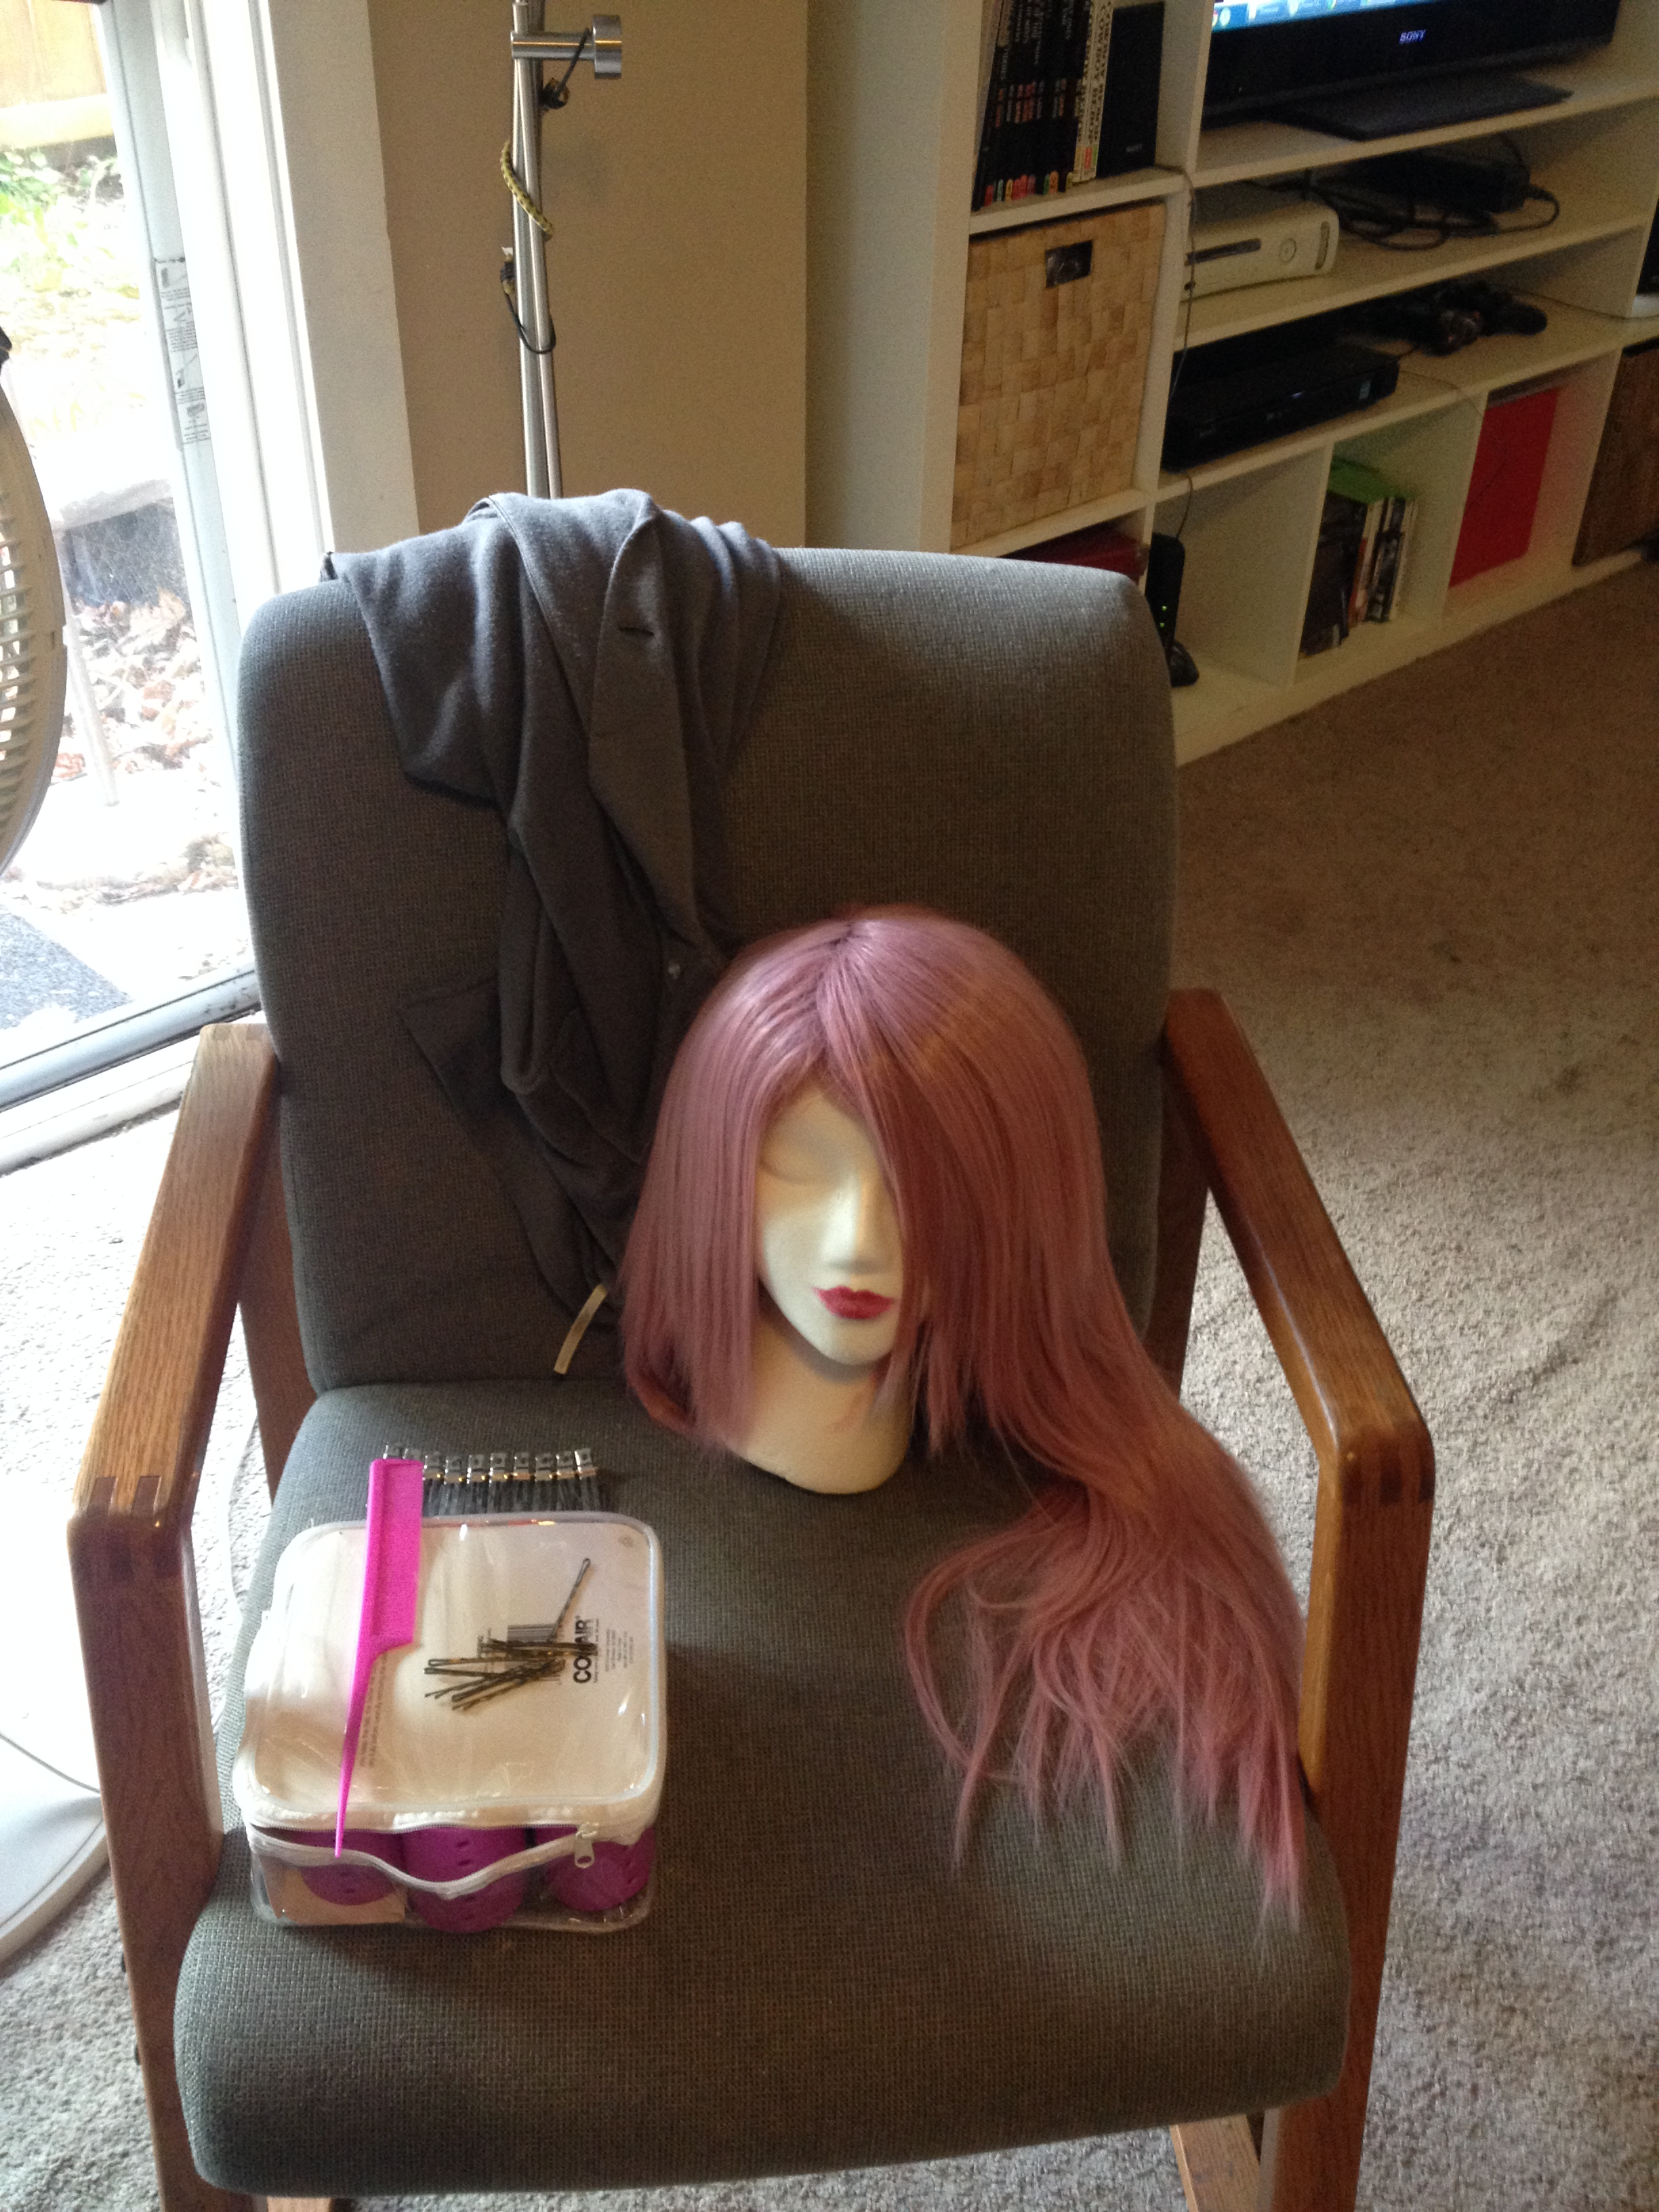 Then I pinned up a little more than the top half of the hair. This took some doing—there is a LOT of hair on that thing.